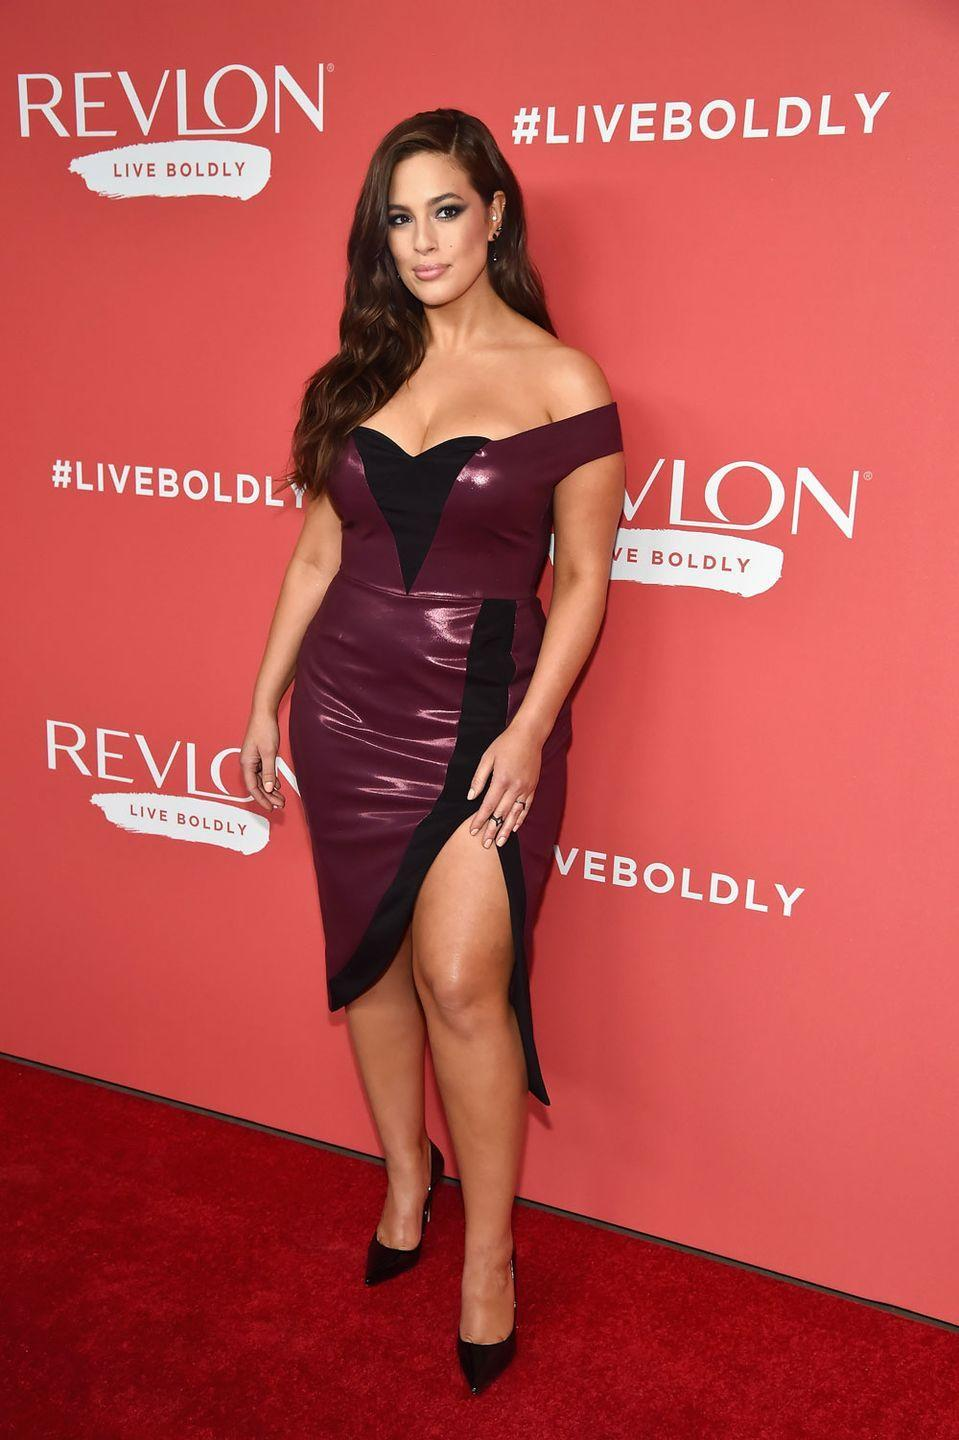 """<p>At the Revlon 'Live Boldly' launch party: Celebrating her new gig as the face of Revlon's 'Live Boldly' campaign, Ashley was the embodiment of that message in this <a href=""""https://www.cosmopolitan.com/uk/fashion/celebrity/a15879816/ashley-graham-revlon-dress/"""" rel=""""nofollow noopener"""" target=""""_blank"""" data-ylk=""""slk:purple PVC dress"""" class=""""link rapid-noclick-resp"""">purple PVC dress</a>. </p>"""